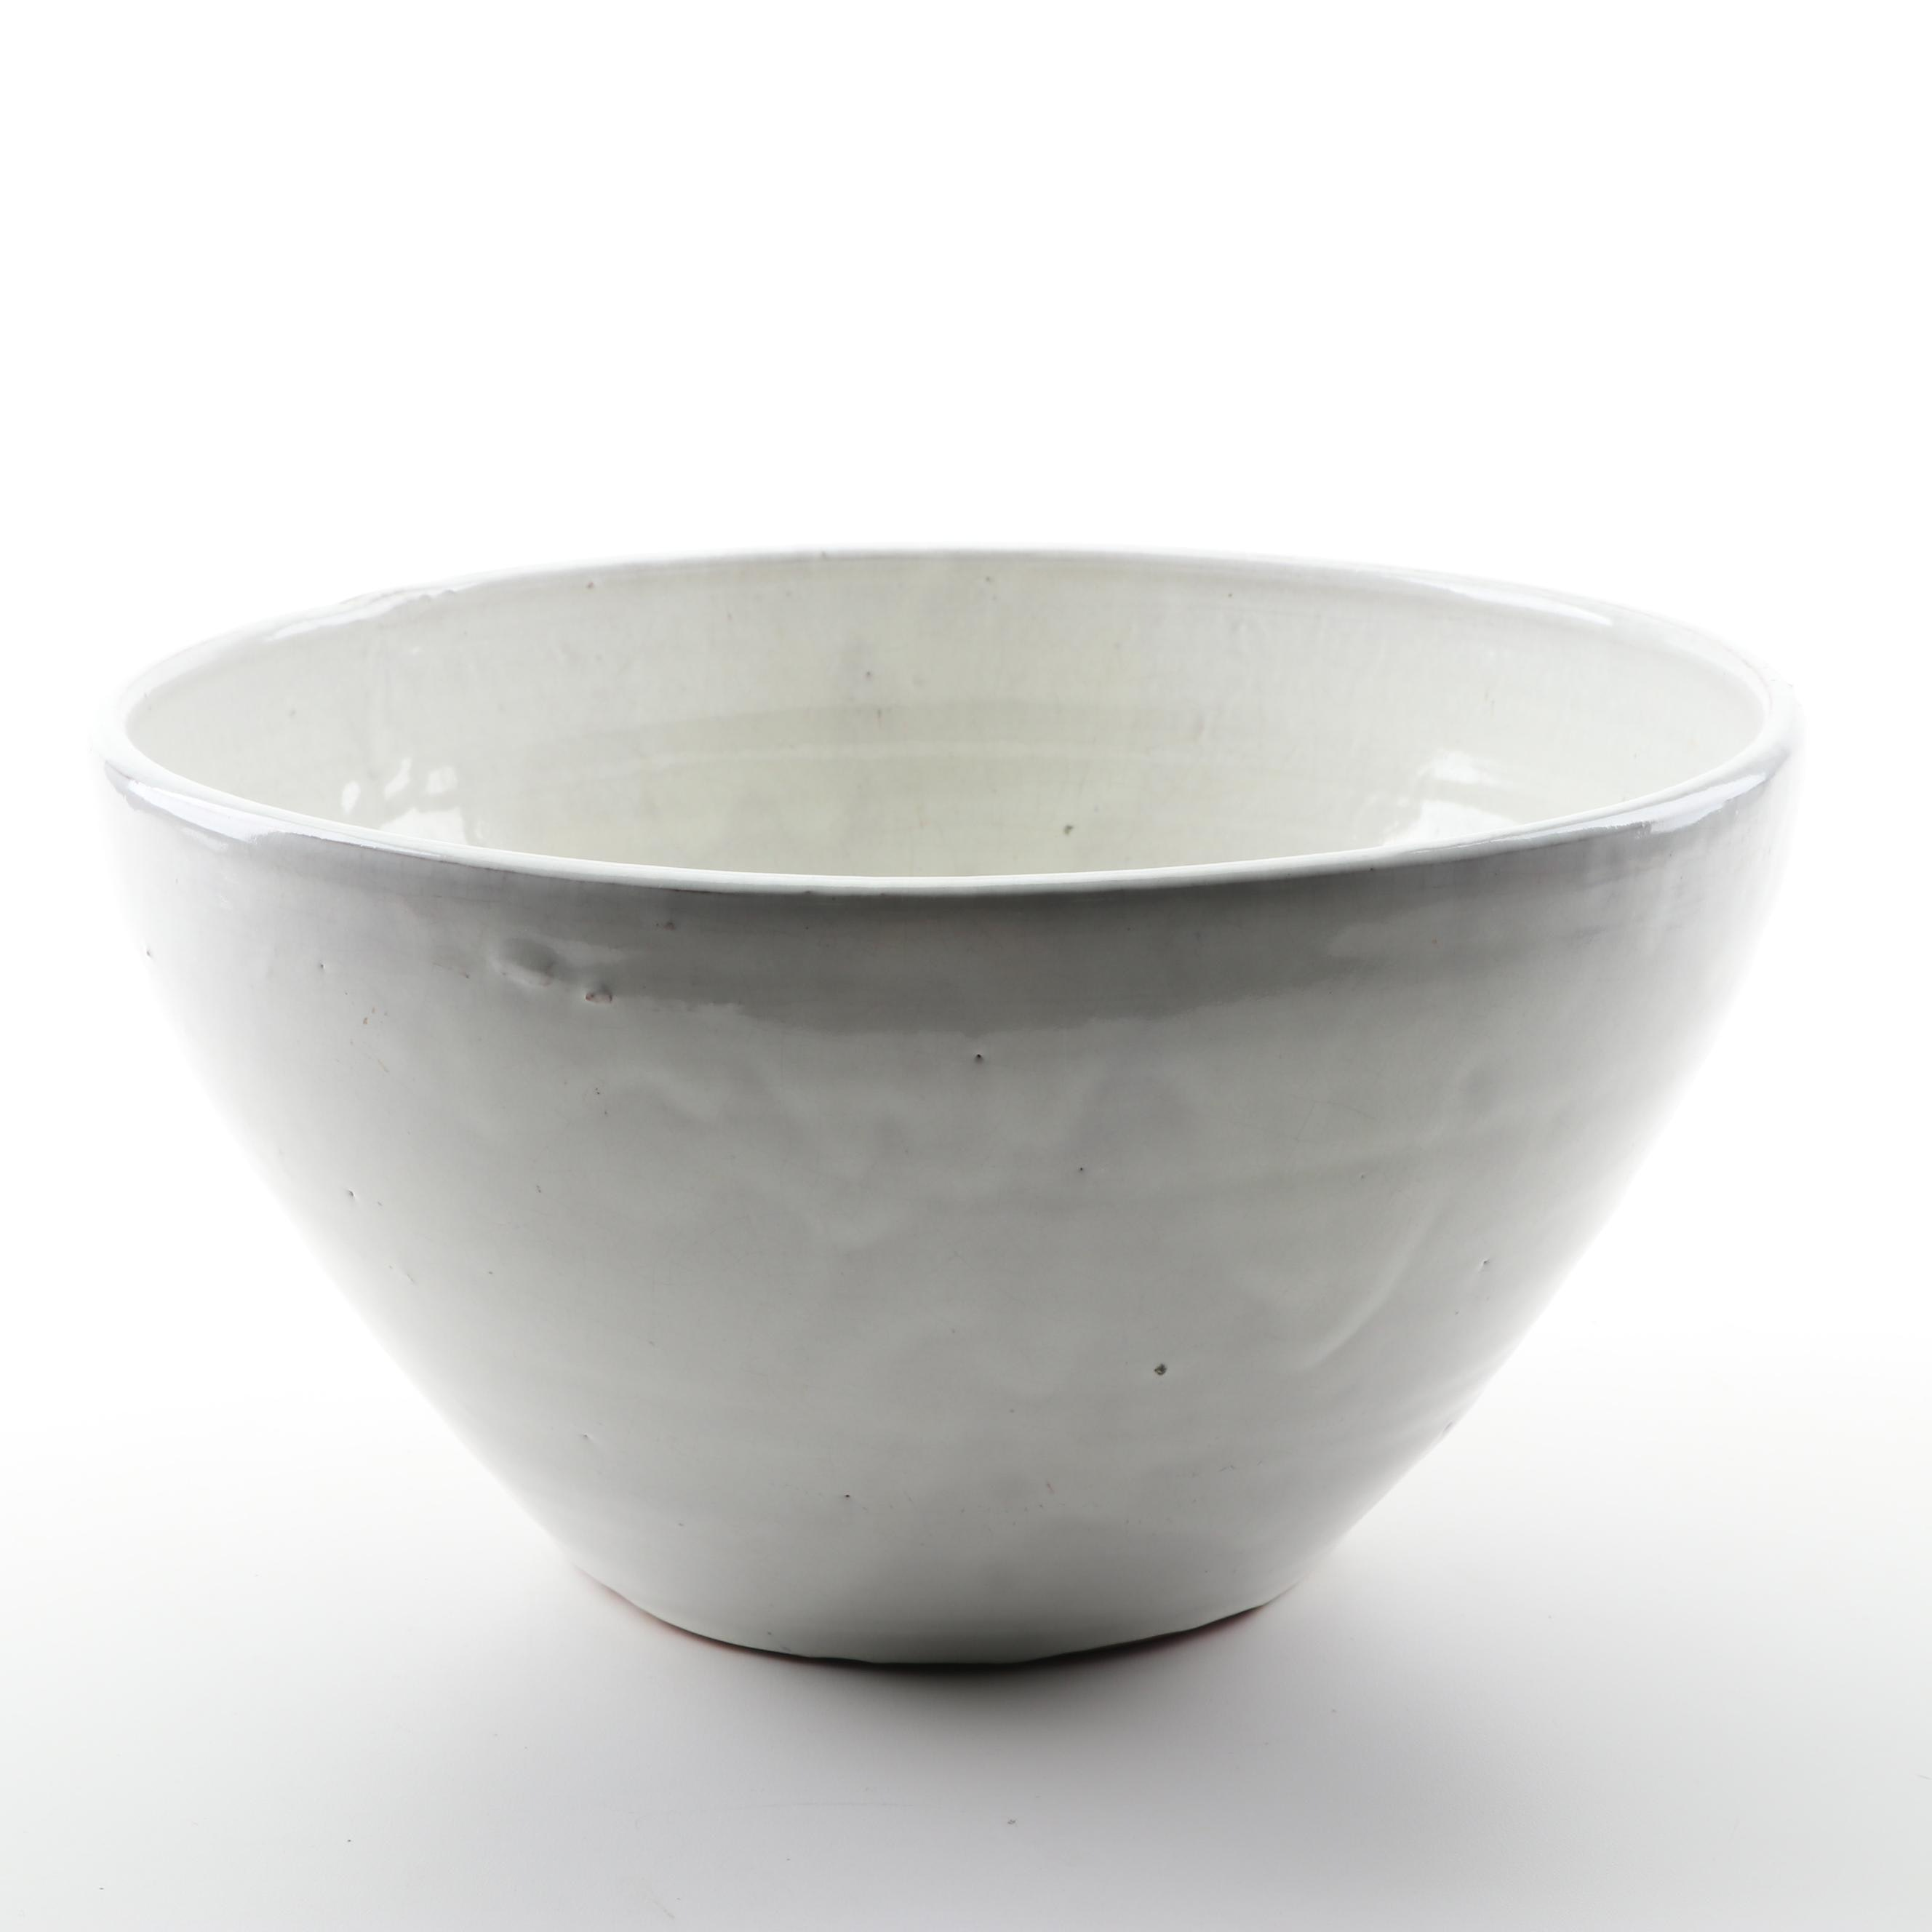 A. R. Cole North Carolina Slip Glazed Earthenware Bowl, circa 1930